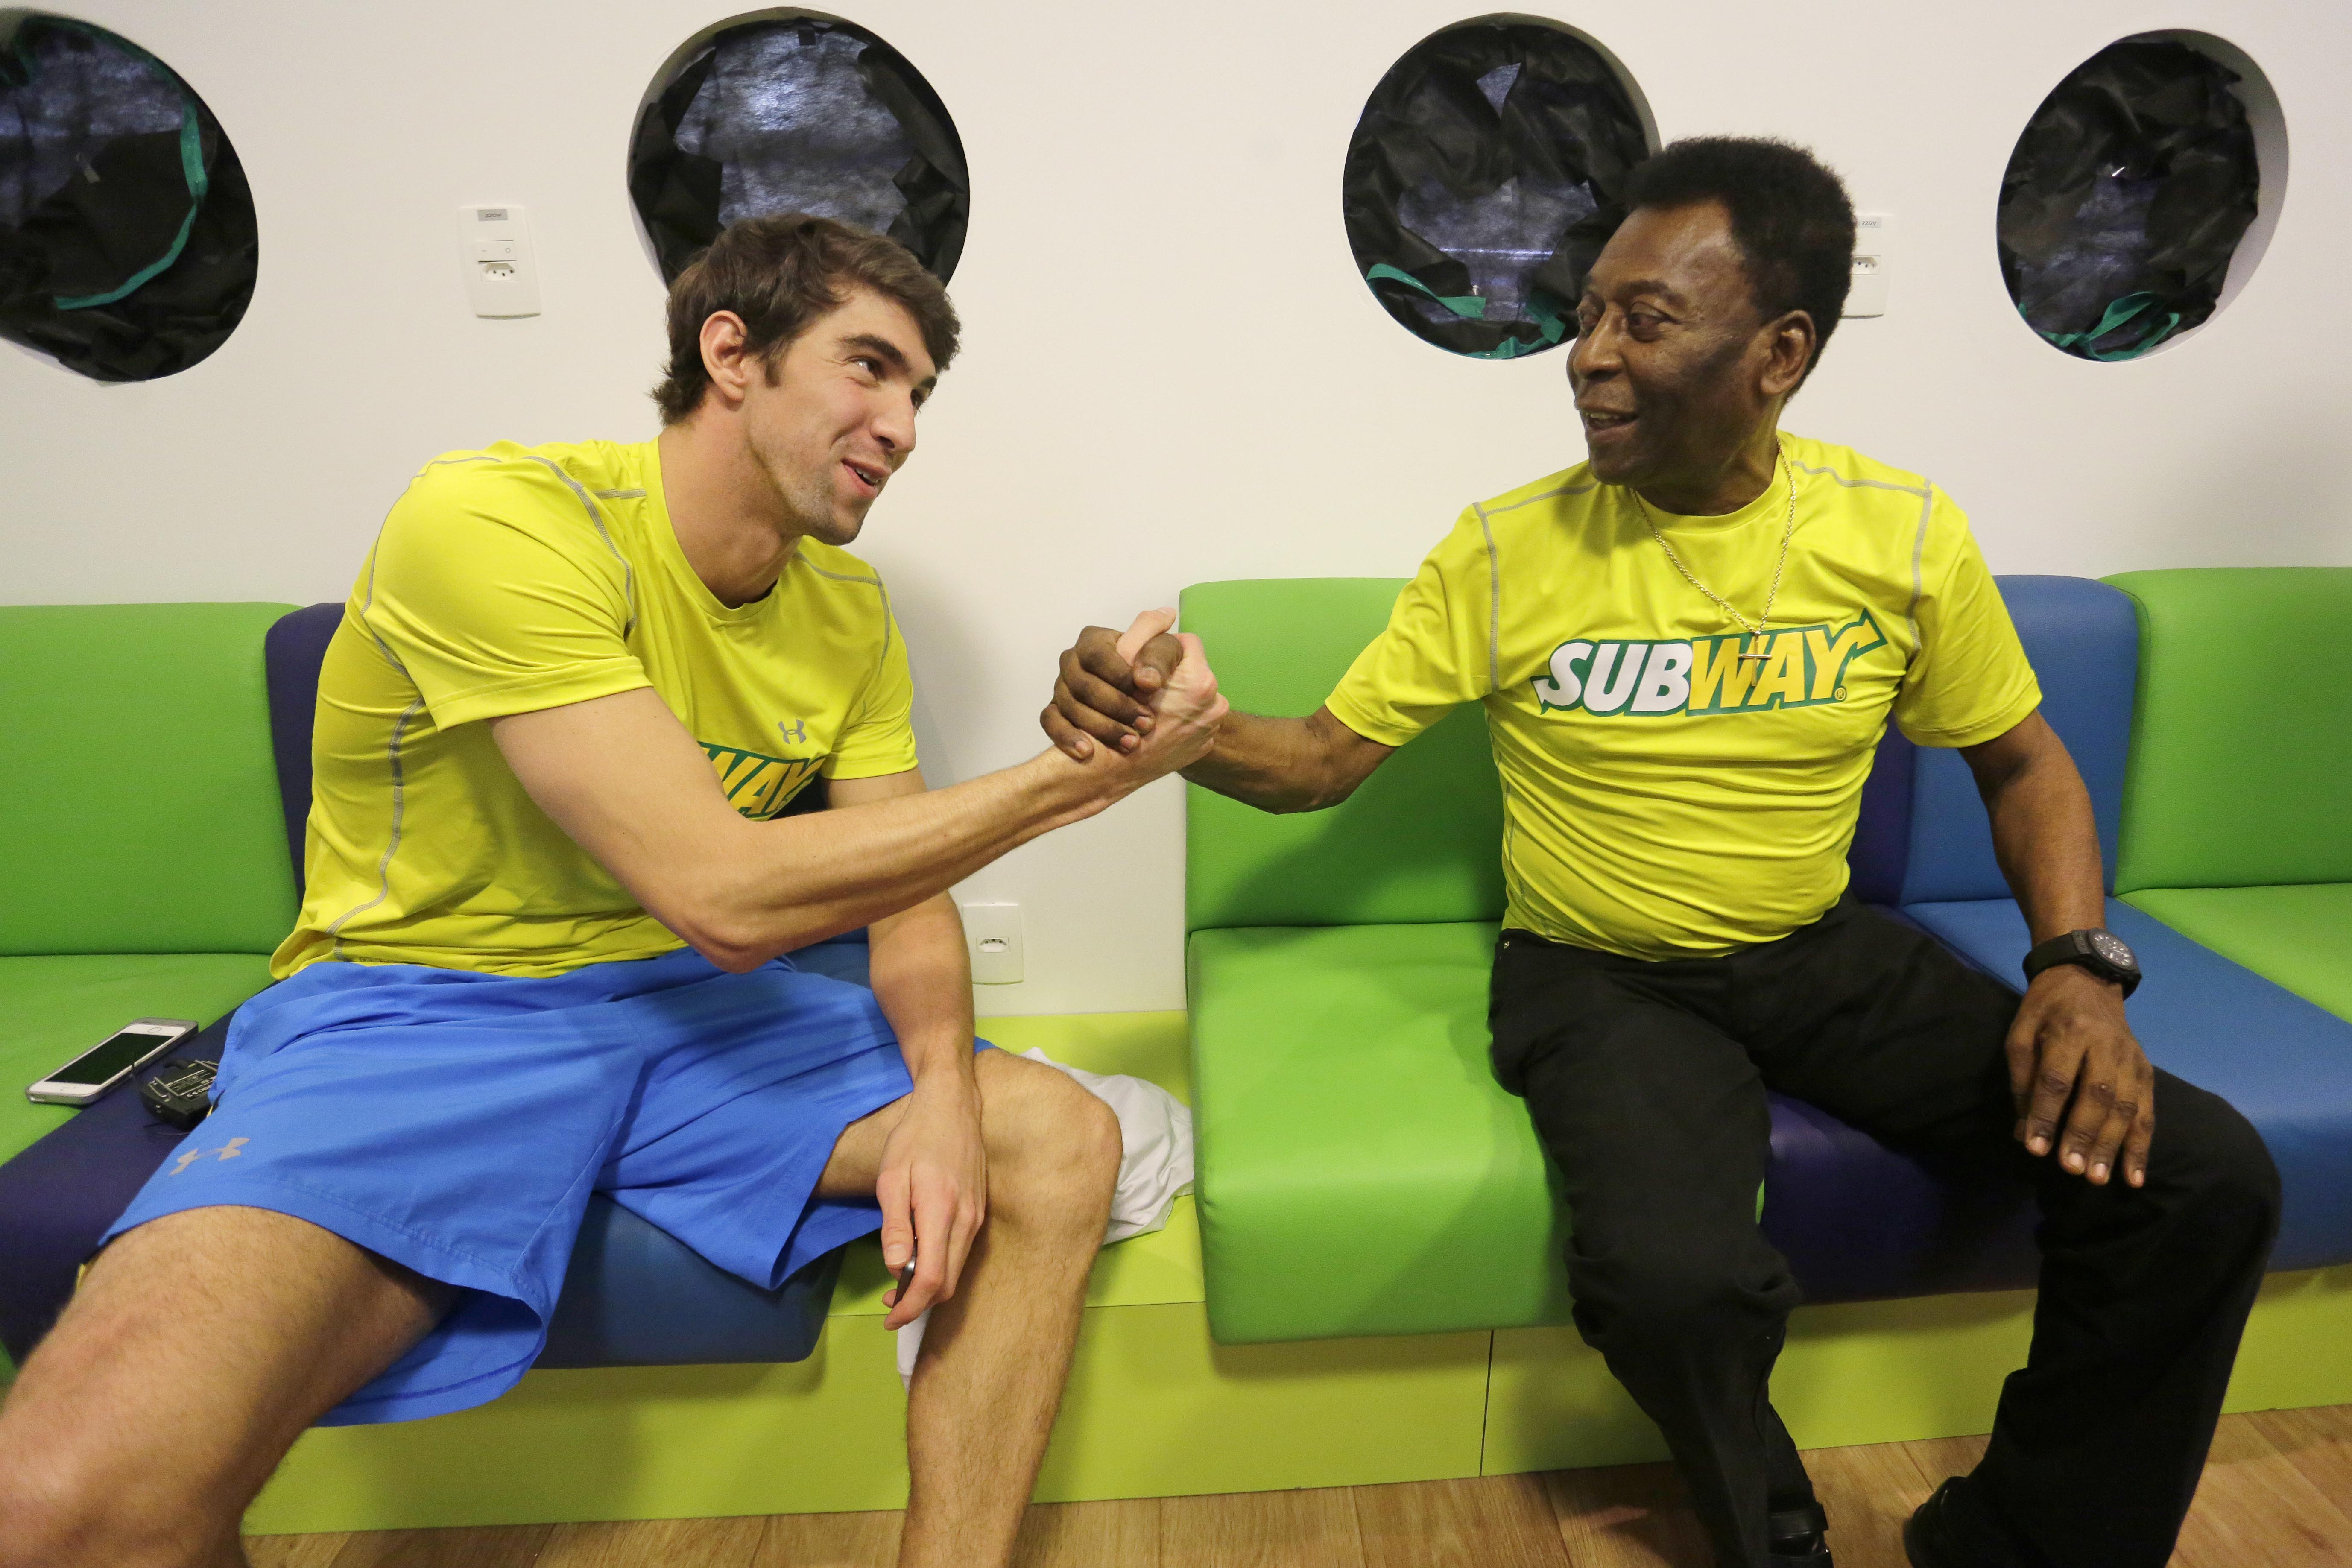 Pele and Michael Phelps